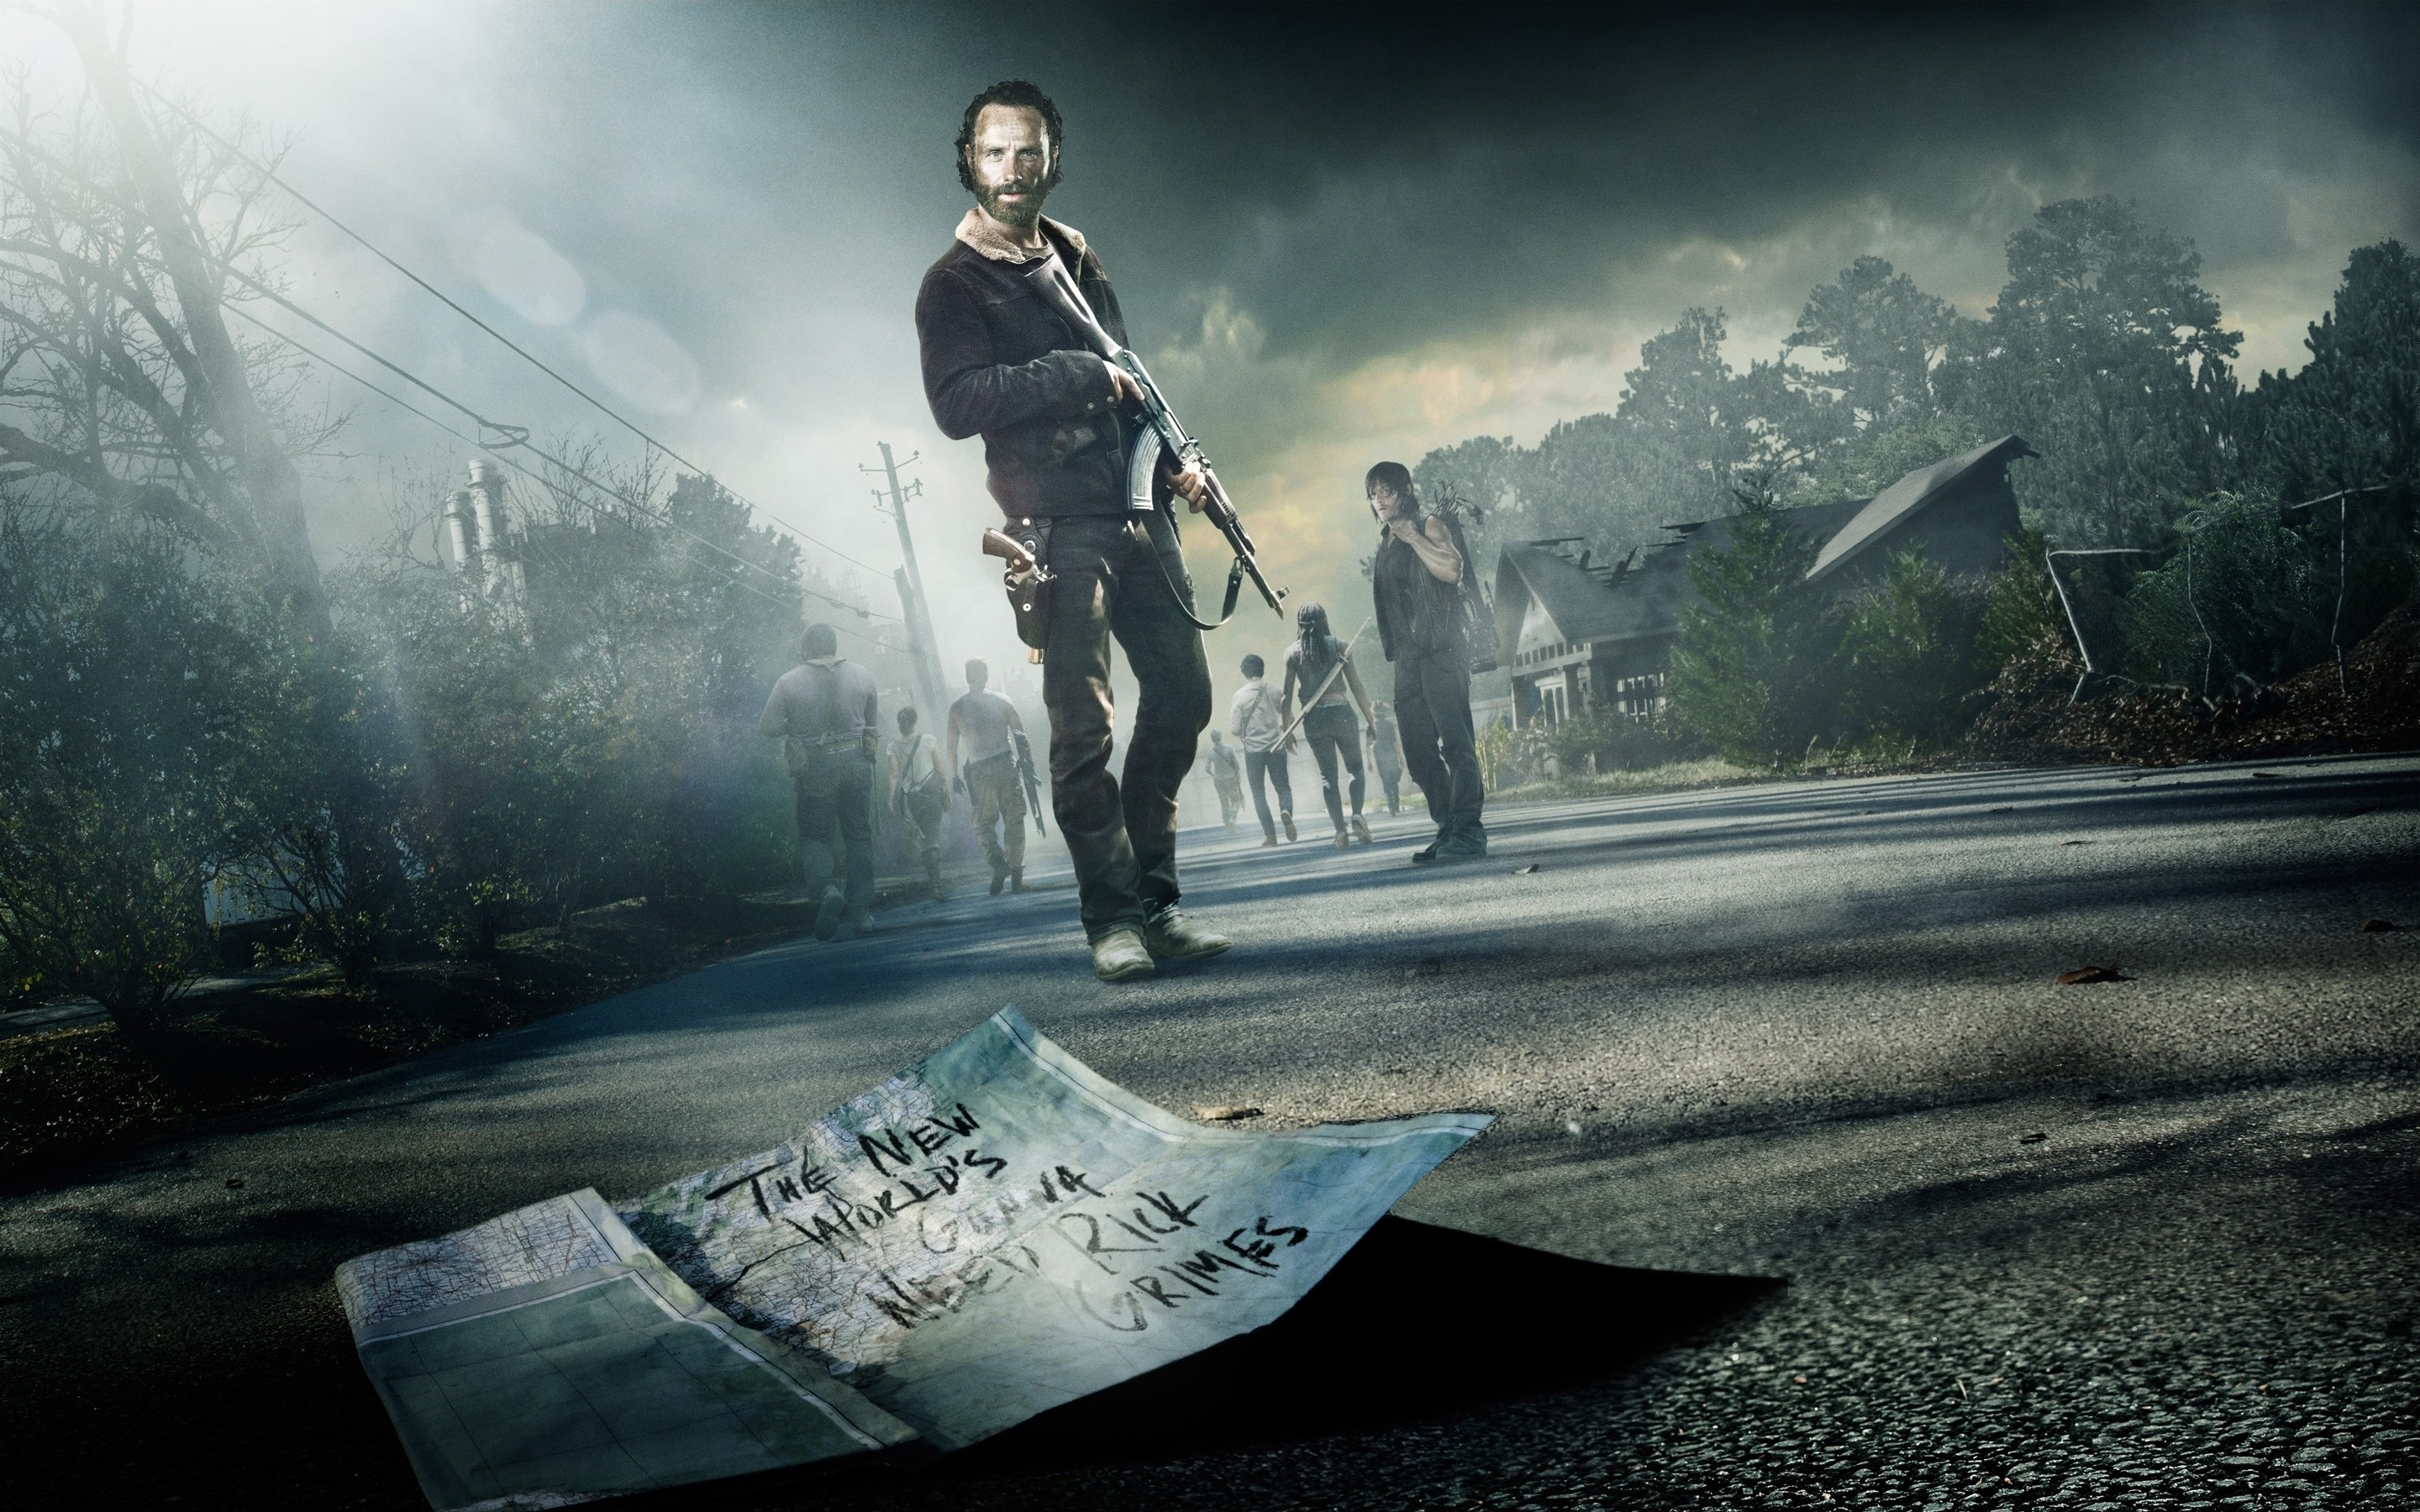 10 Top Hd Walking Dead Wallpaper FULL HD 1080p For PC Background